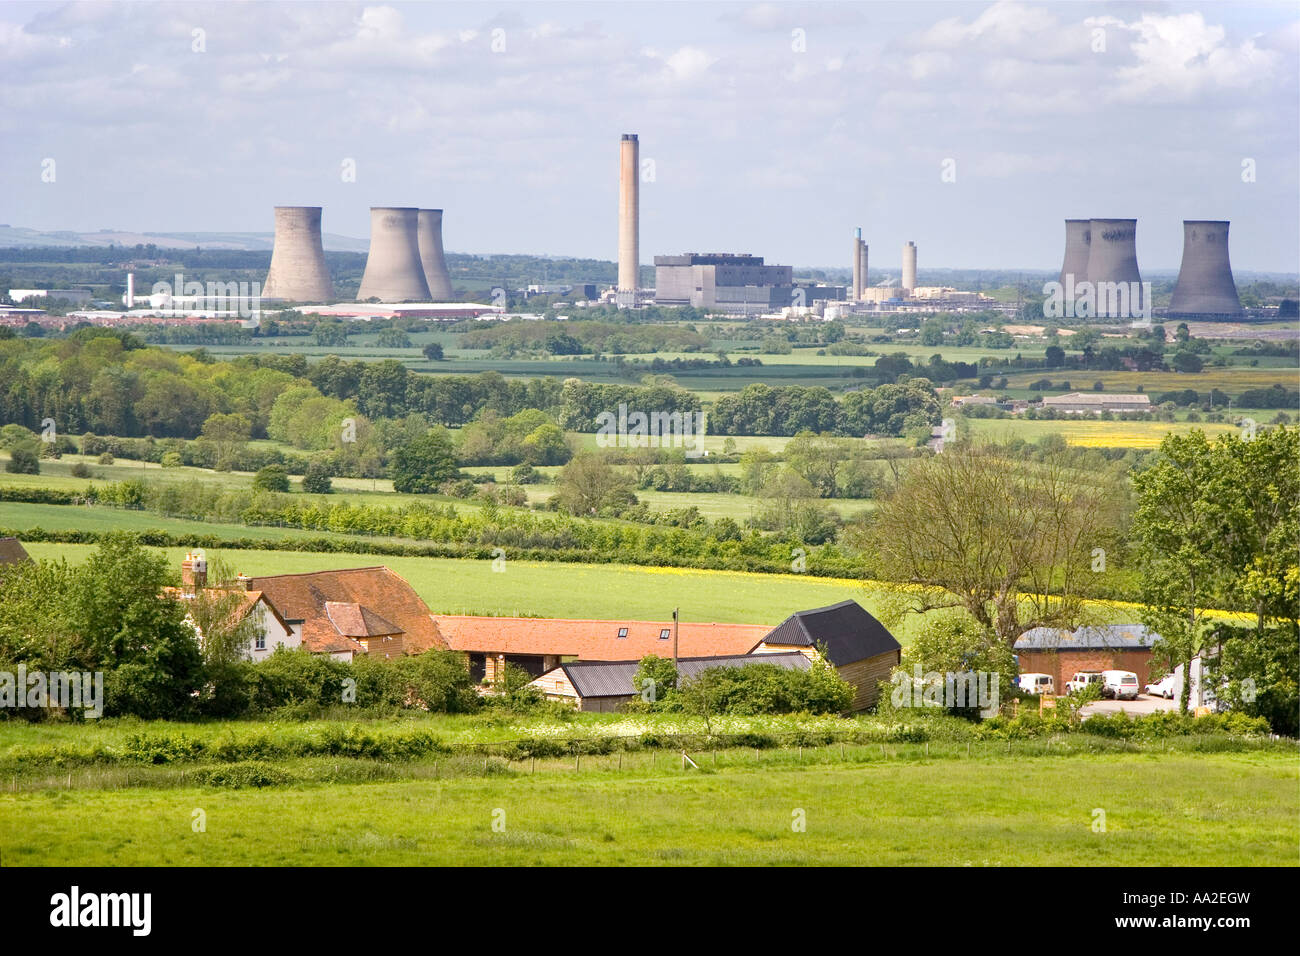 Didcot Power Station viewed from Wittenham Clump Oxfordshire - Stock Image